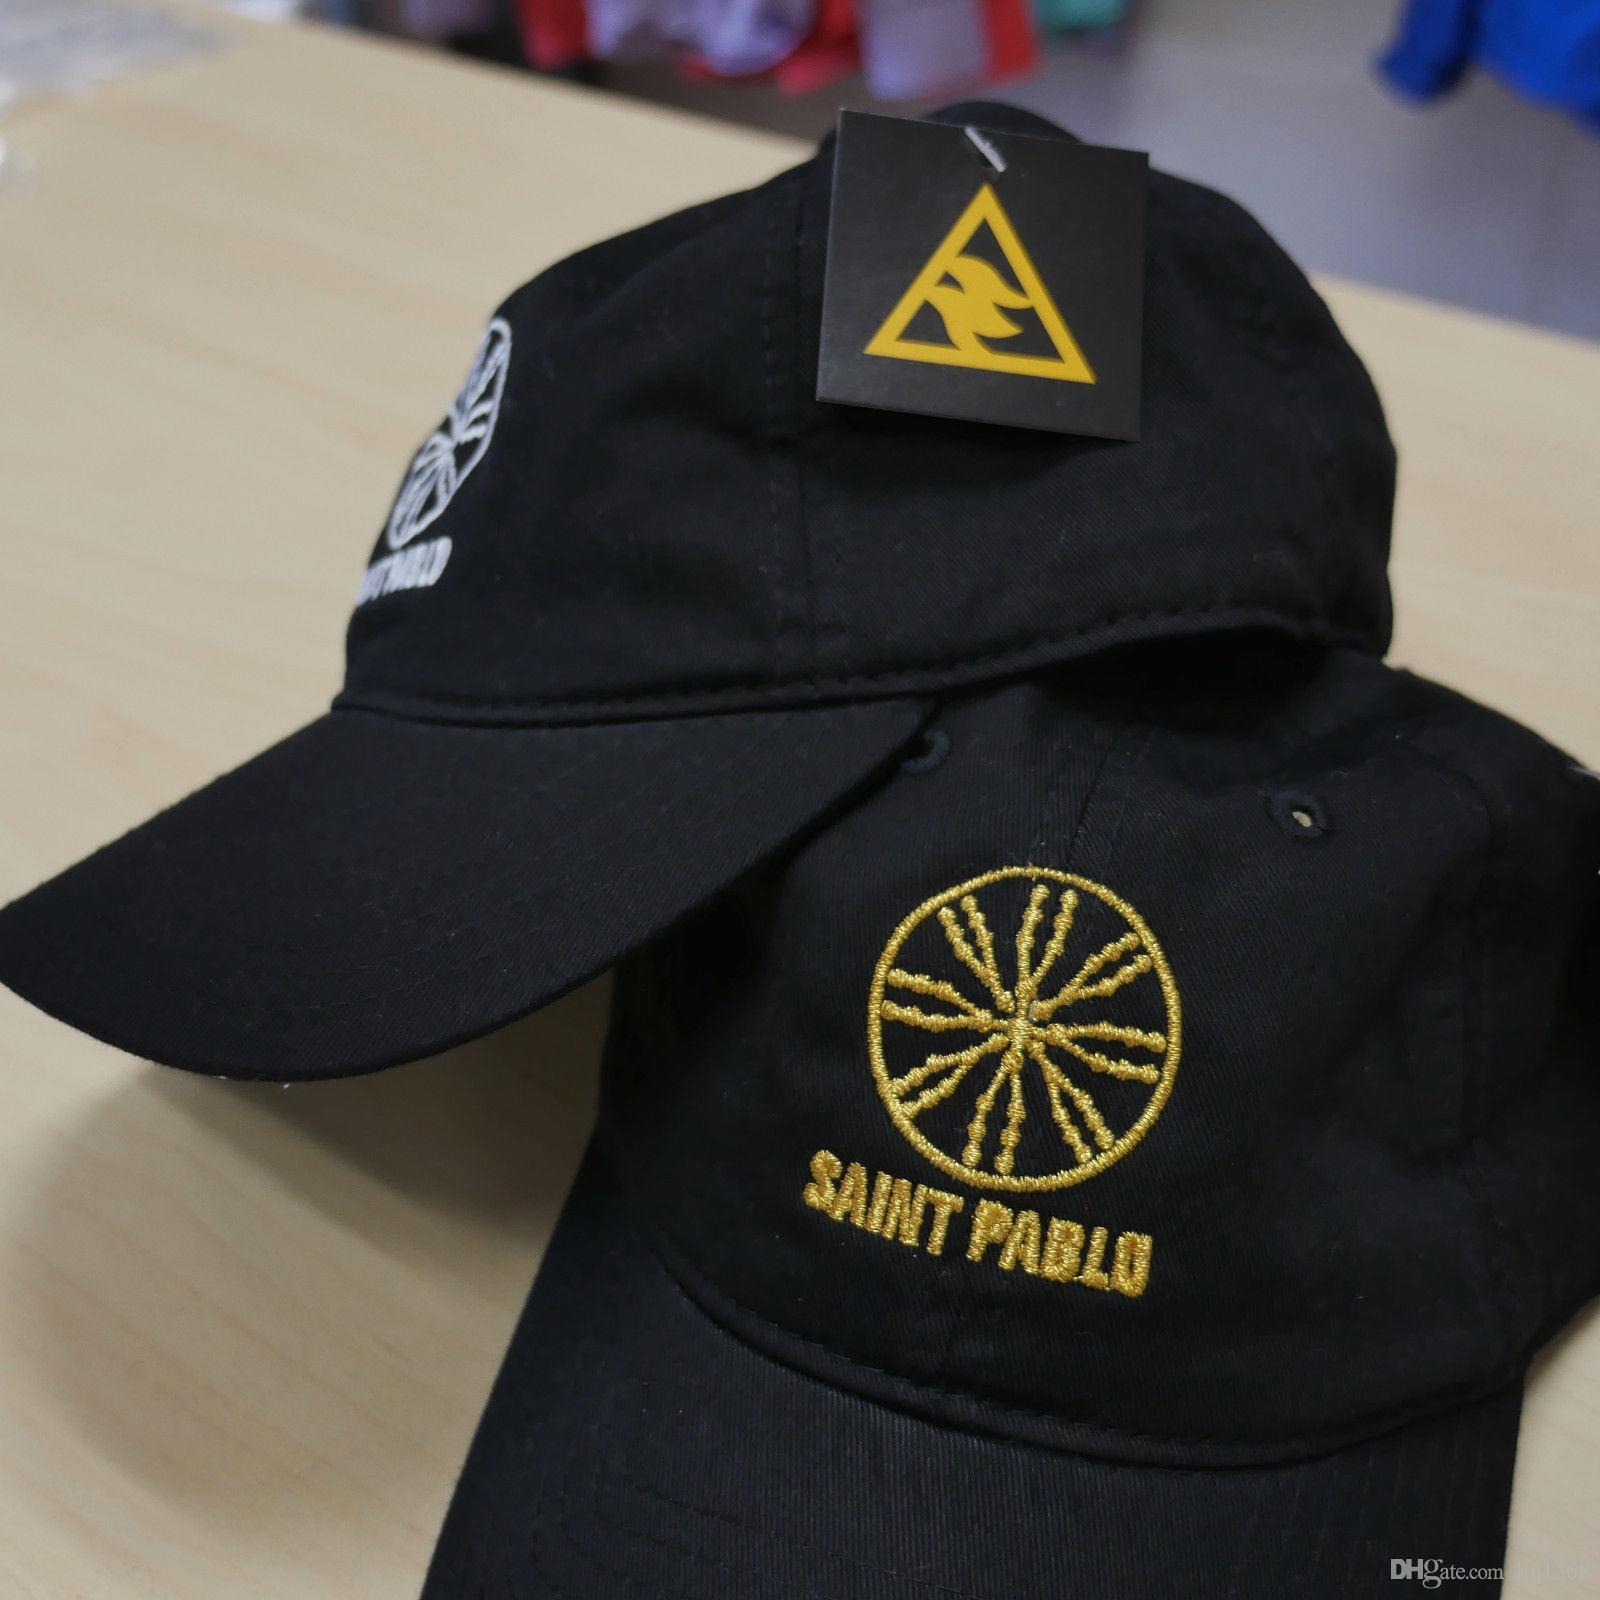 Kanye West Saint-Paul World Tour-Merch-Dad Hat Broderie Haute qualité